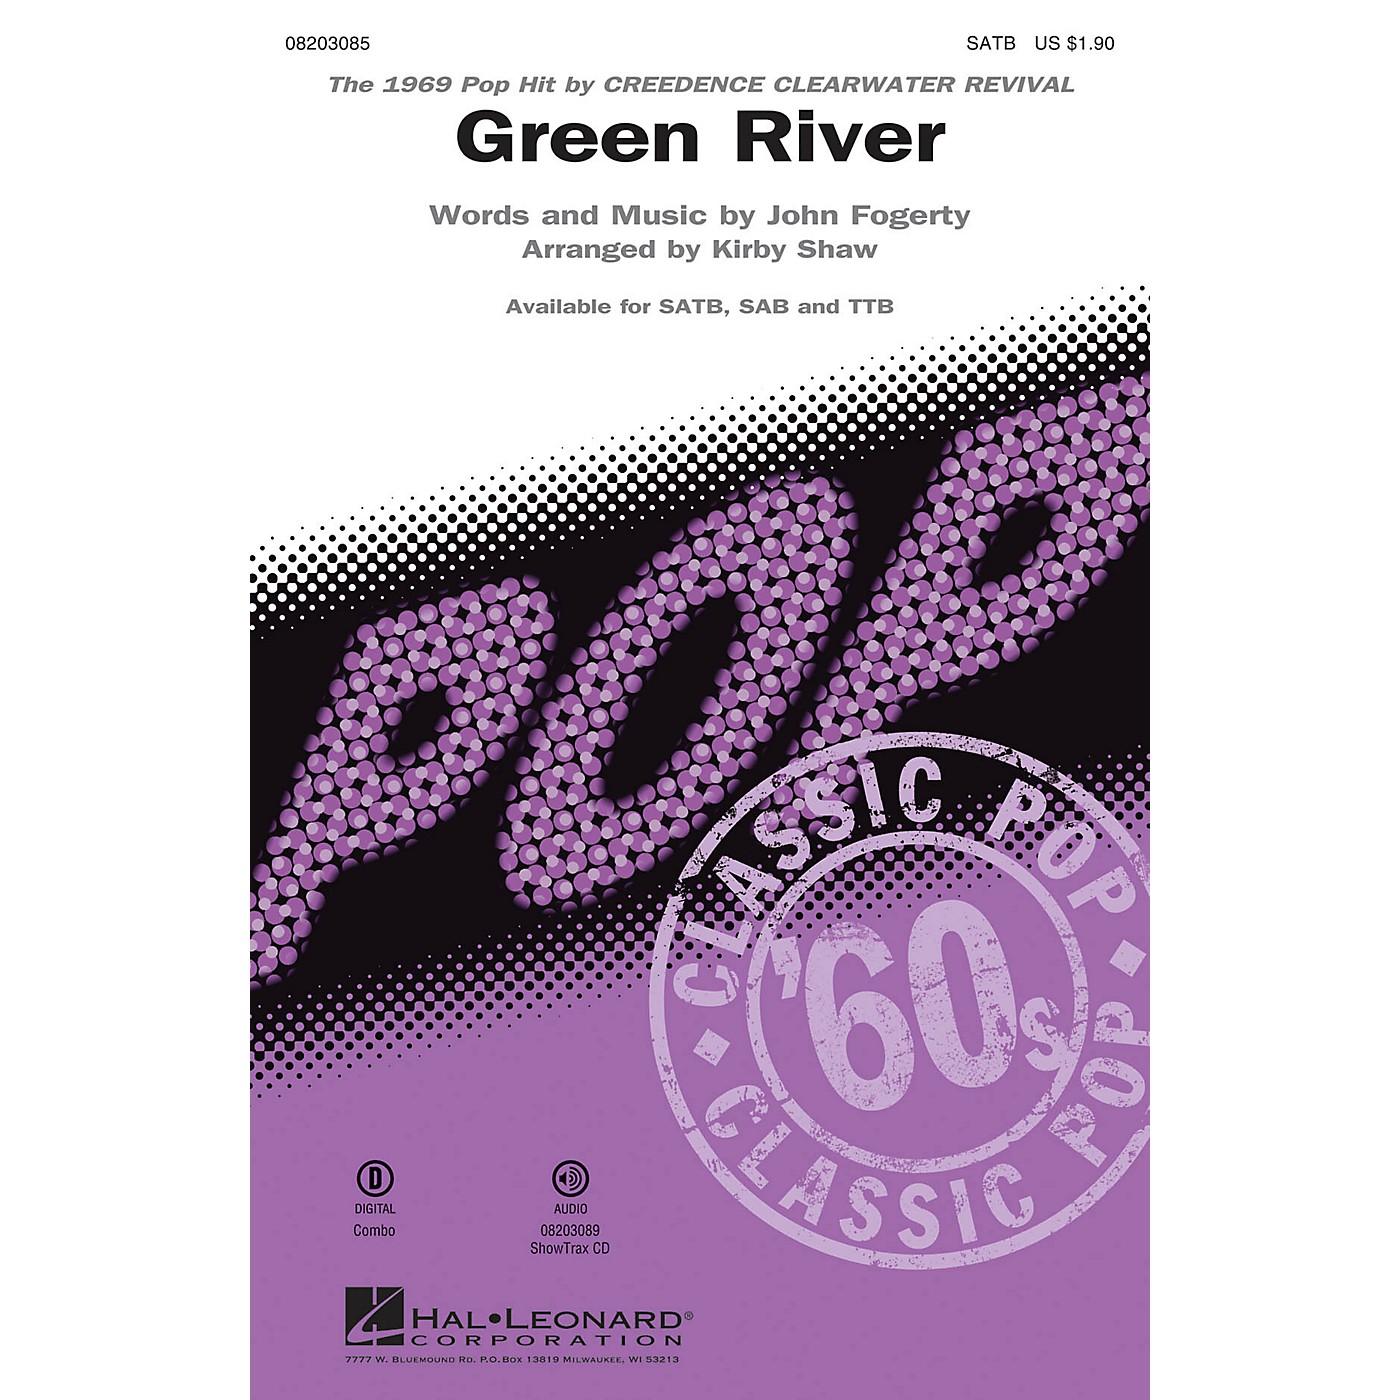 Hal Leonard Green River SAB by Creedence Clearwater Revival Arranged by Kirby Shaw thumbnail